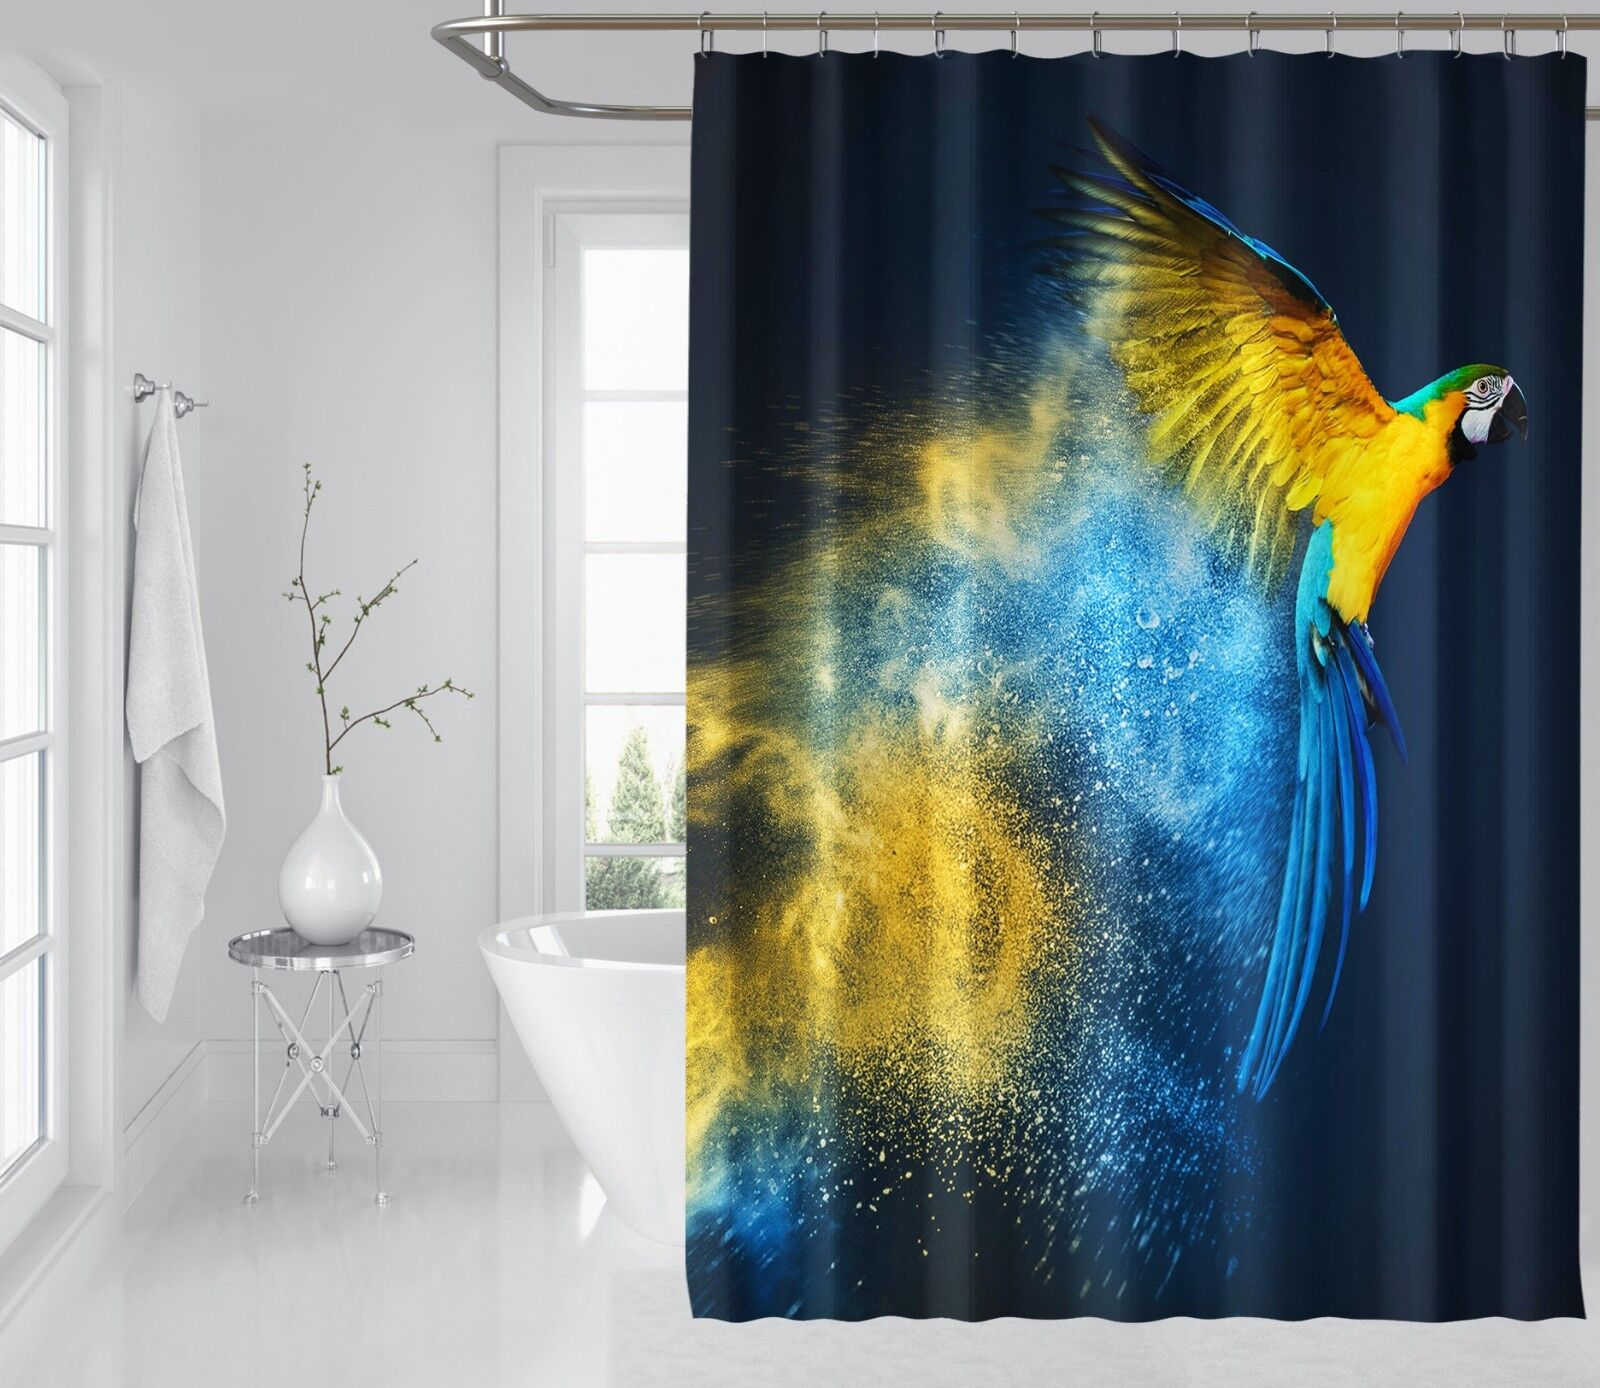 3D Parrot Painting 8 Shower Shower Shower Curtain Waterproof Fiber Bathroom Windows Toilet d673a0